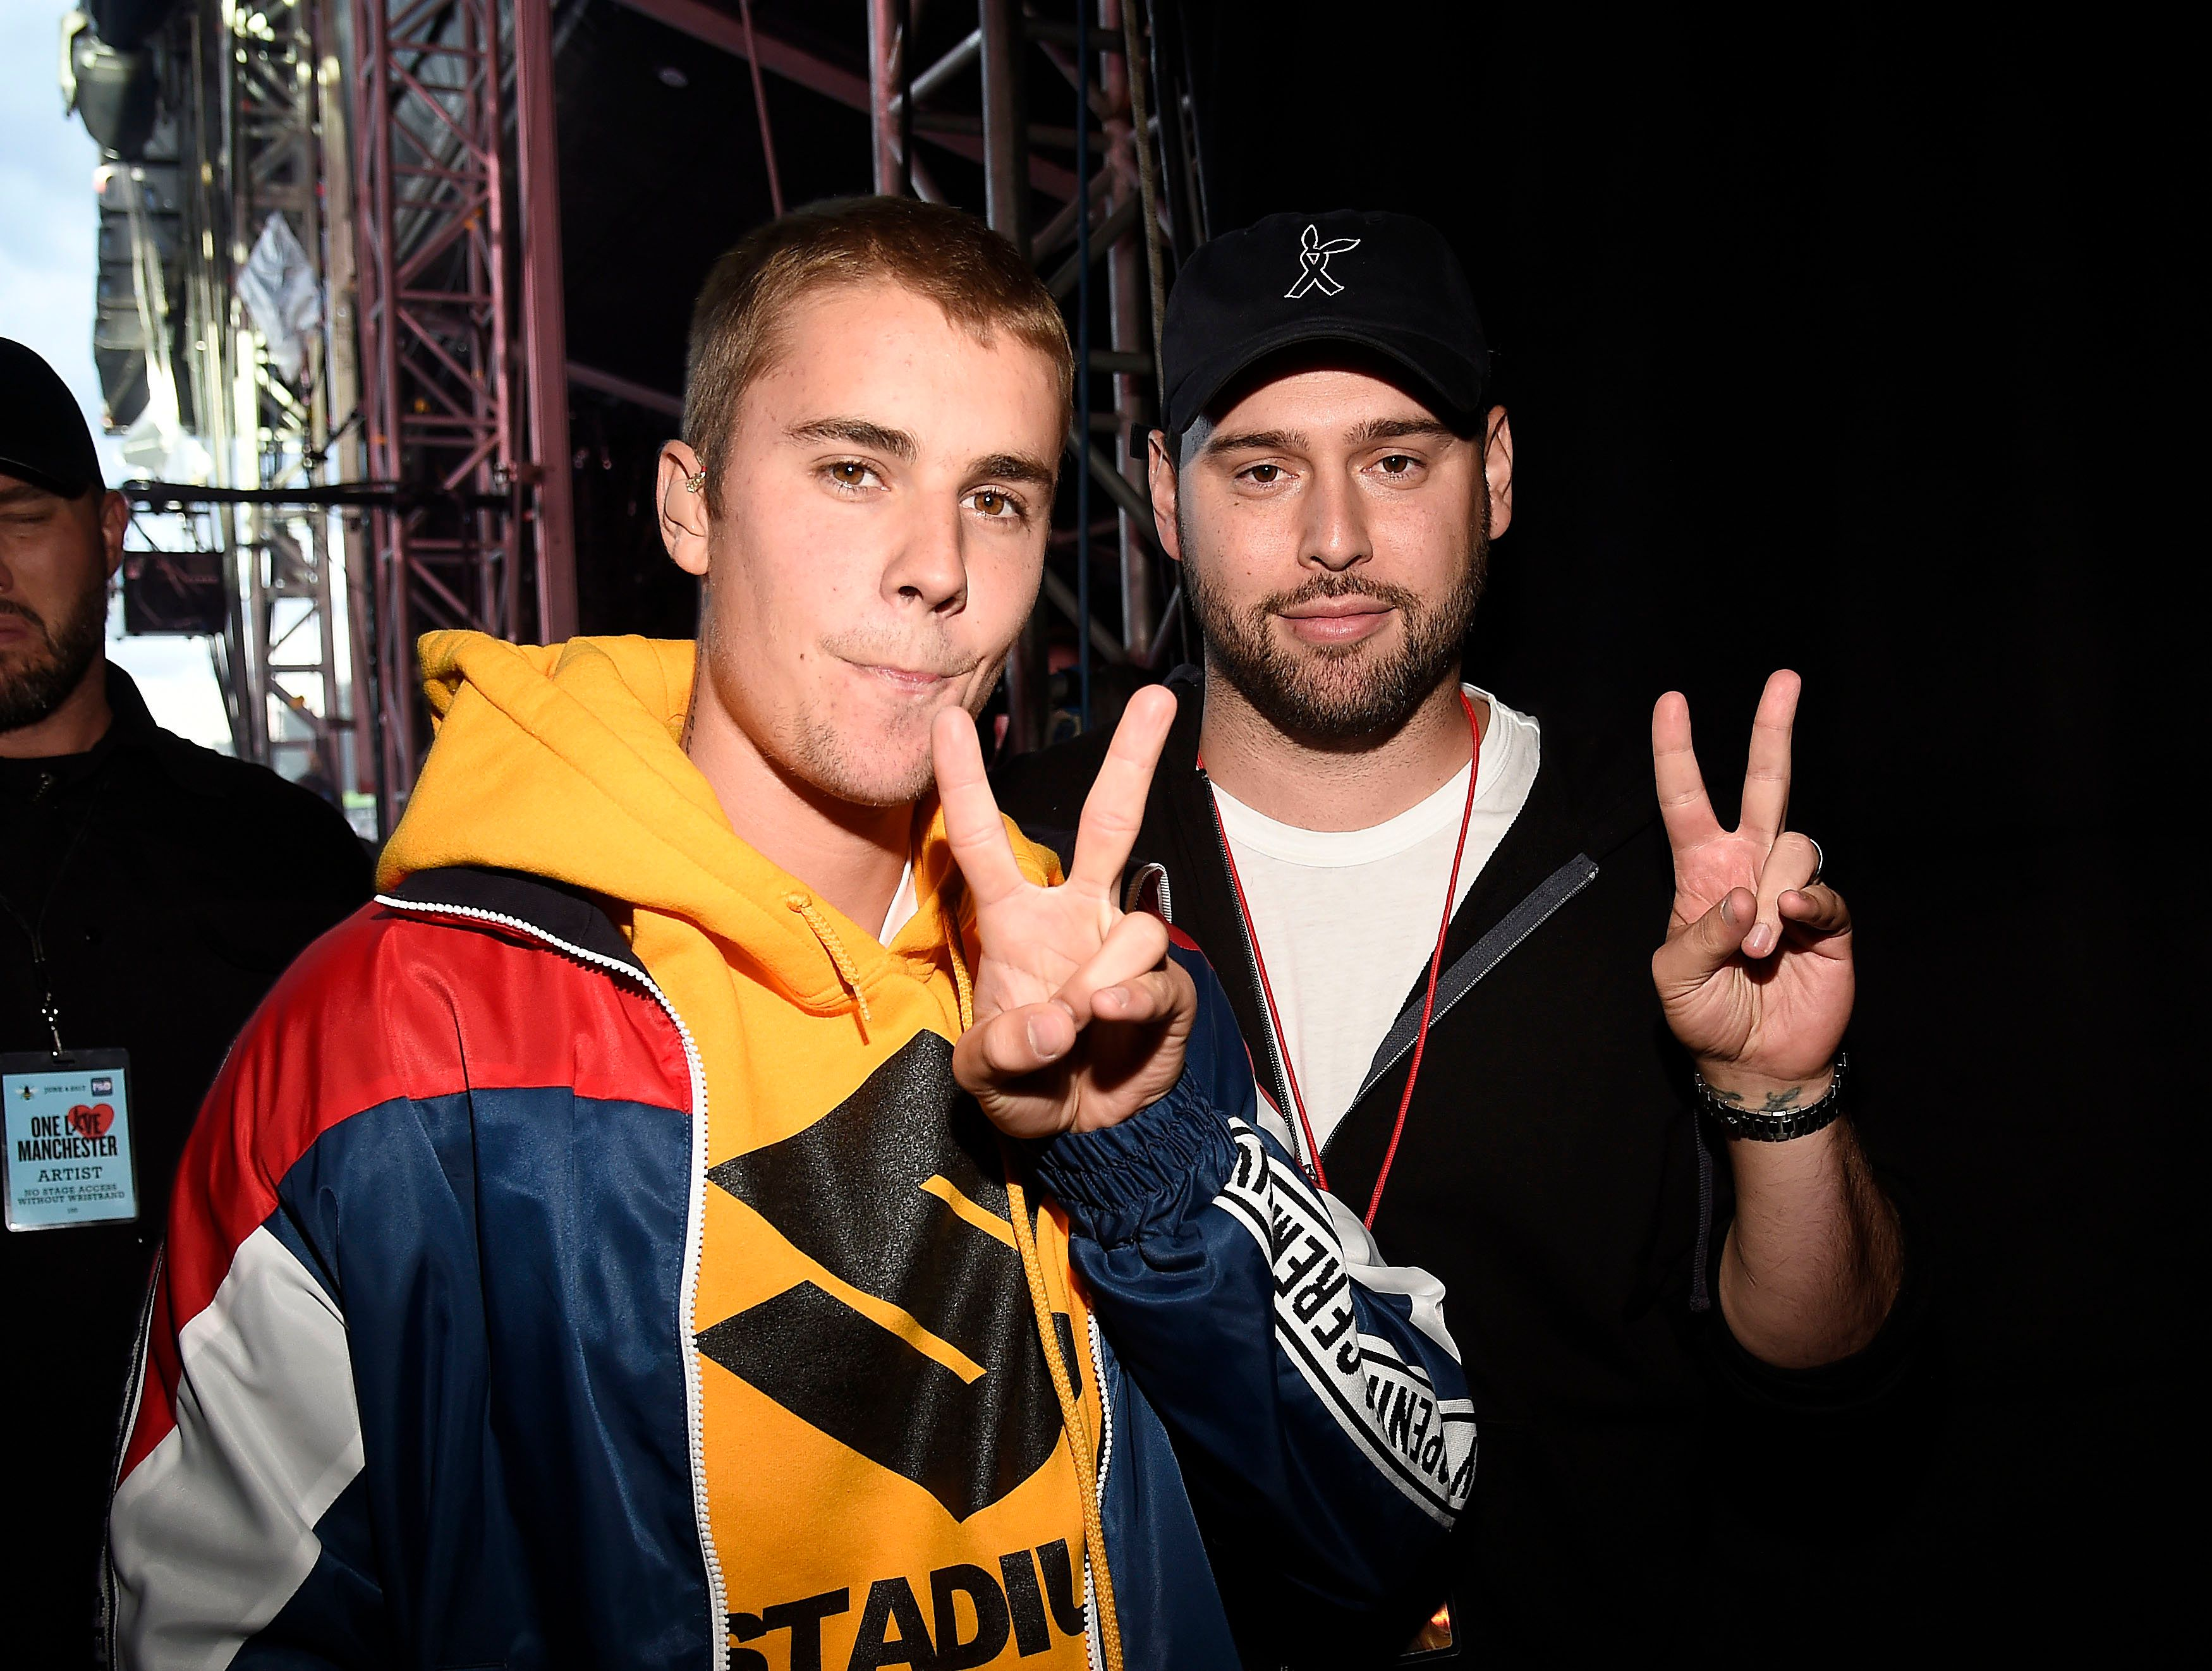 Justin Bieber's Manager Scooter Braun 'Feared Singer Would Die' At Height Of His Personal